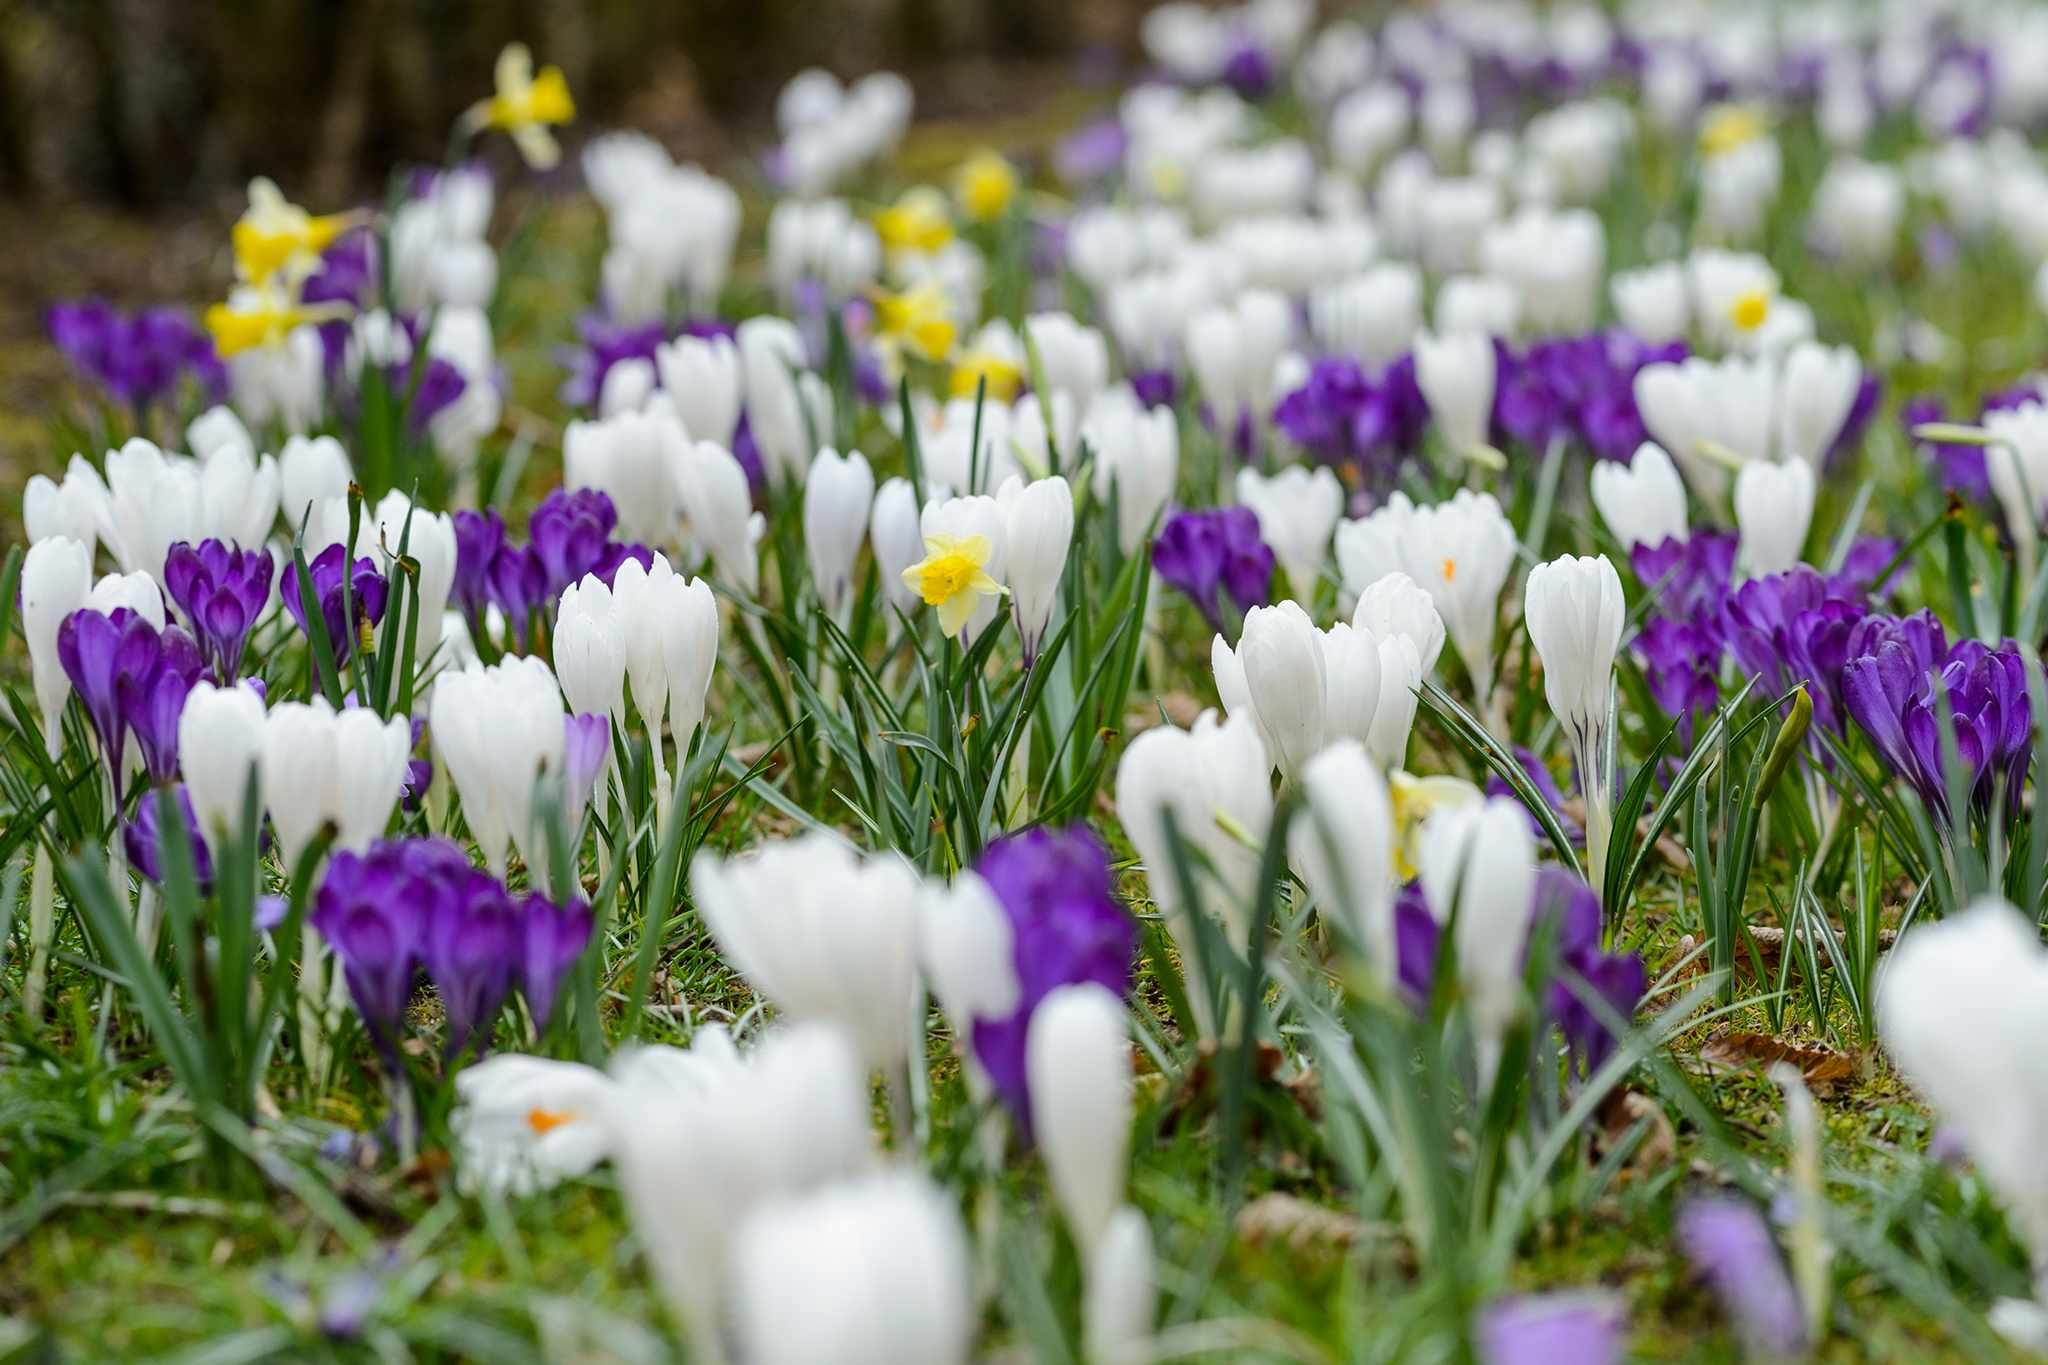 Naturalised crocus bulbs in a lawn